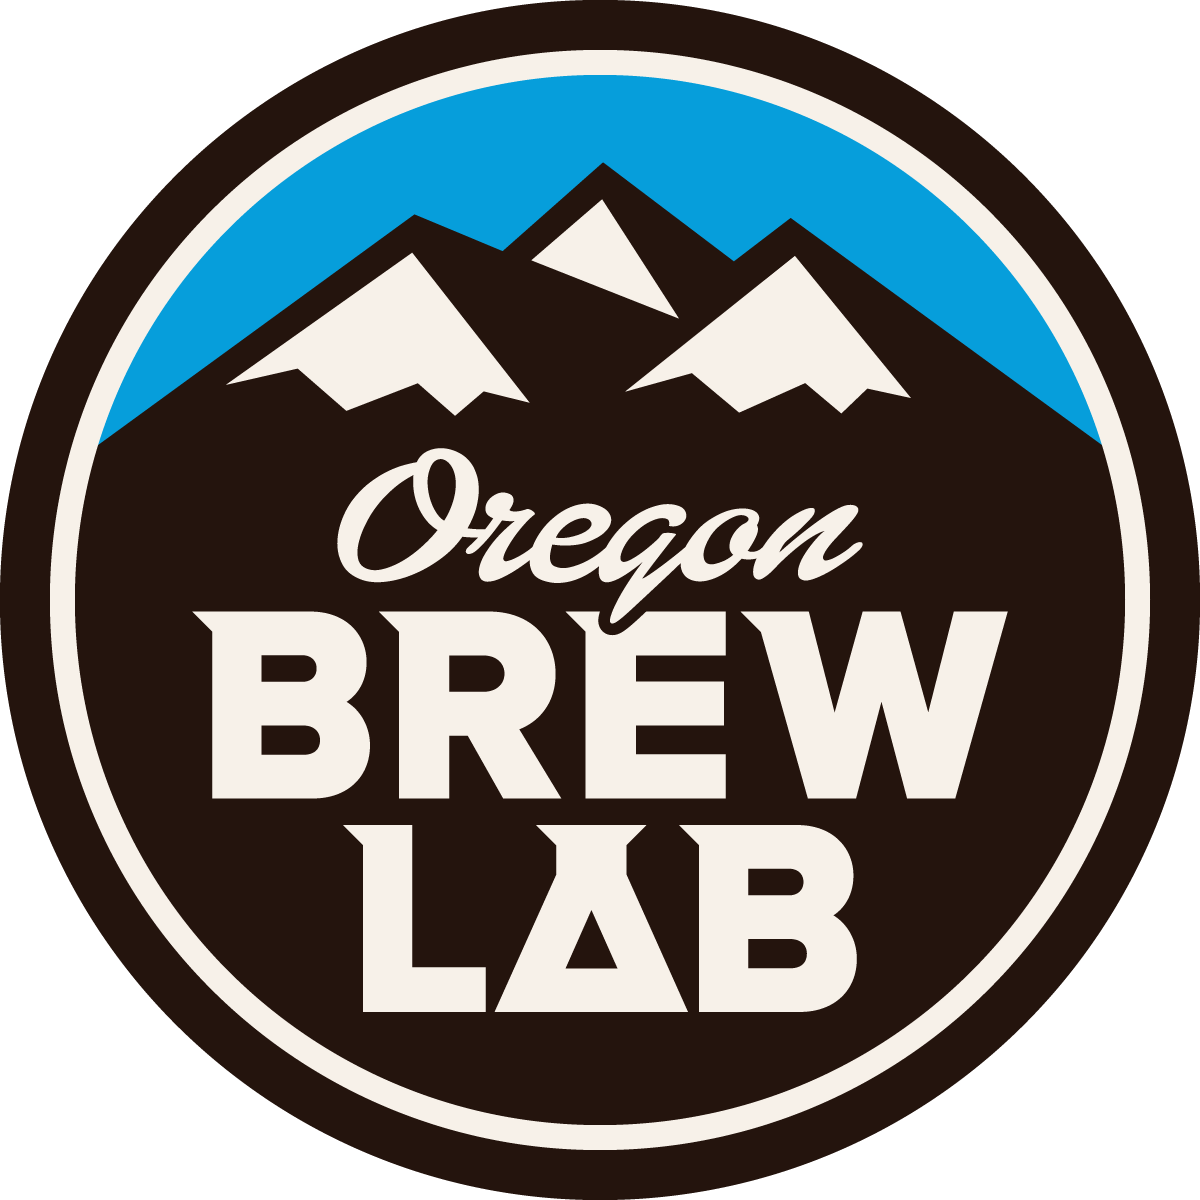 Oregon BrewLab - Oregon BrewLab provides fast, affordable, and accurate analysis of beer, cider, mead, kombucha, and